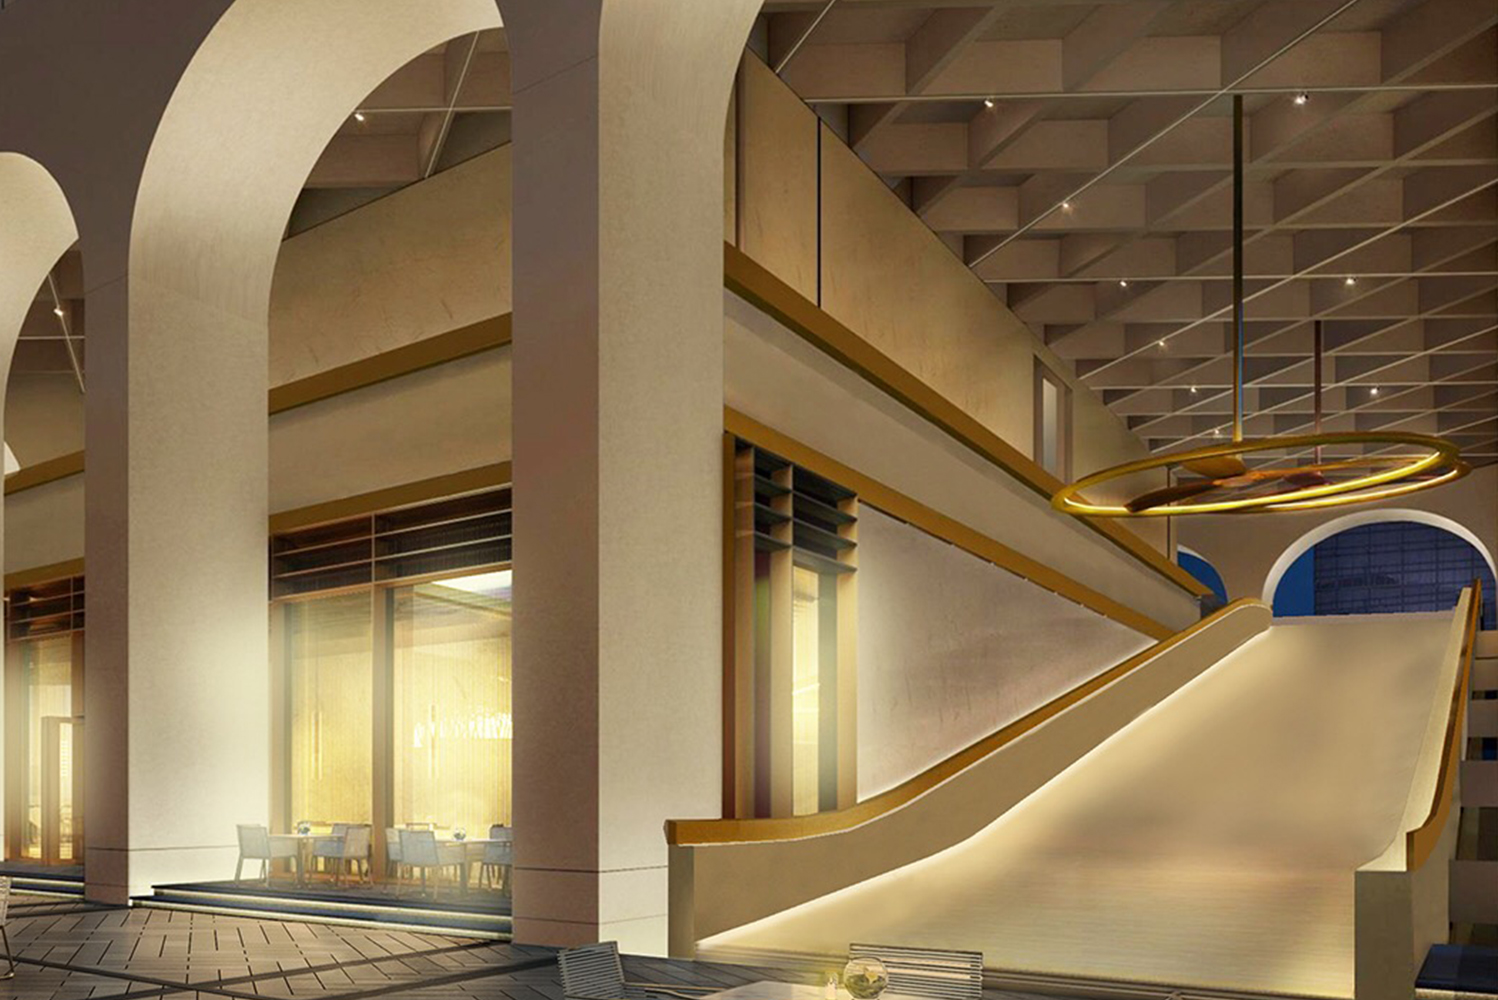 The hotel's terraces around the arches, an architectural signature of the building, also showcase views of the city, Hong Kong Park and Hong Kong Zoological and Botanical Gardens.